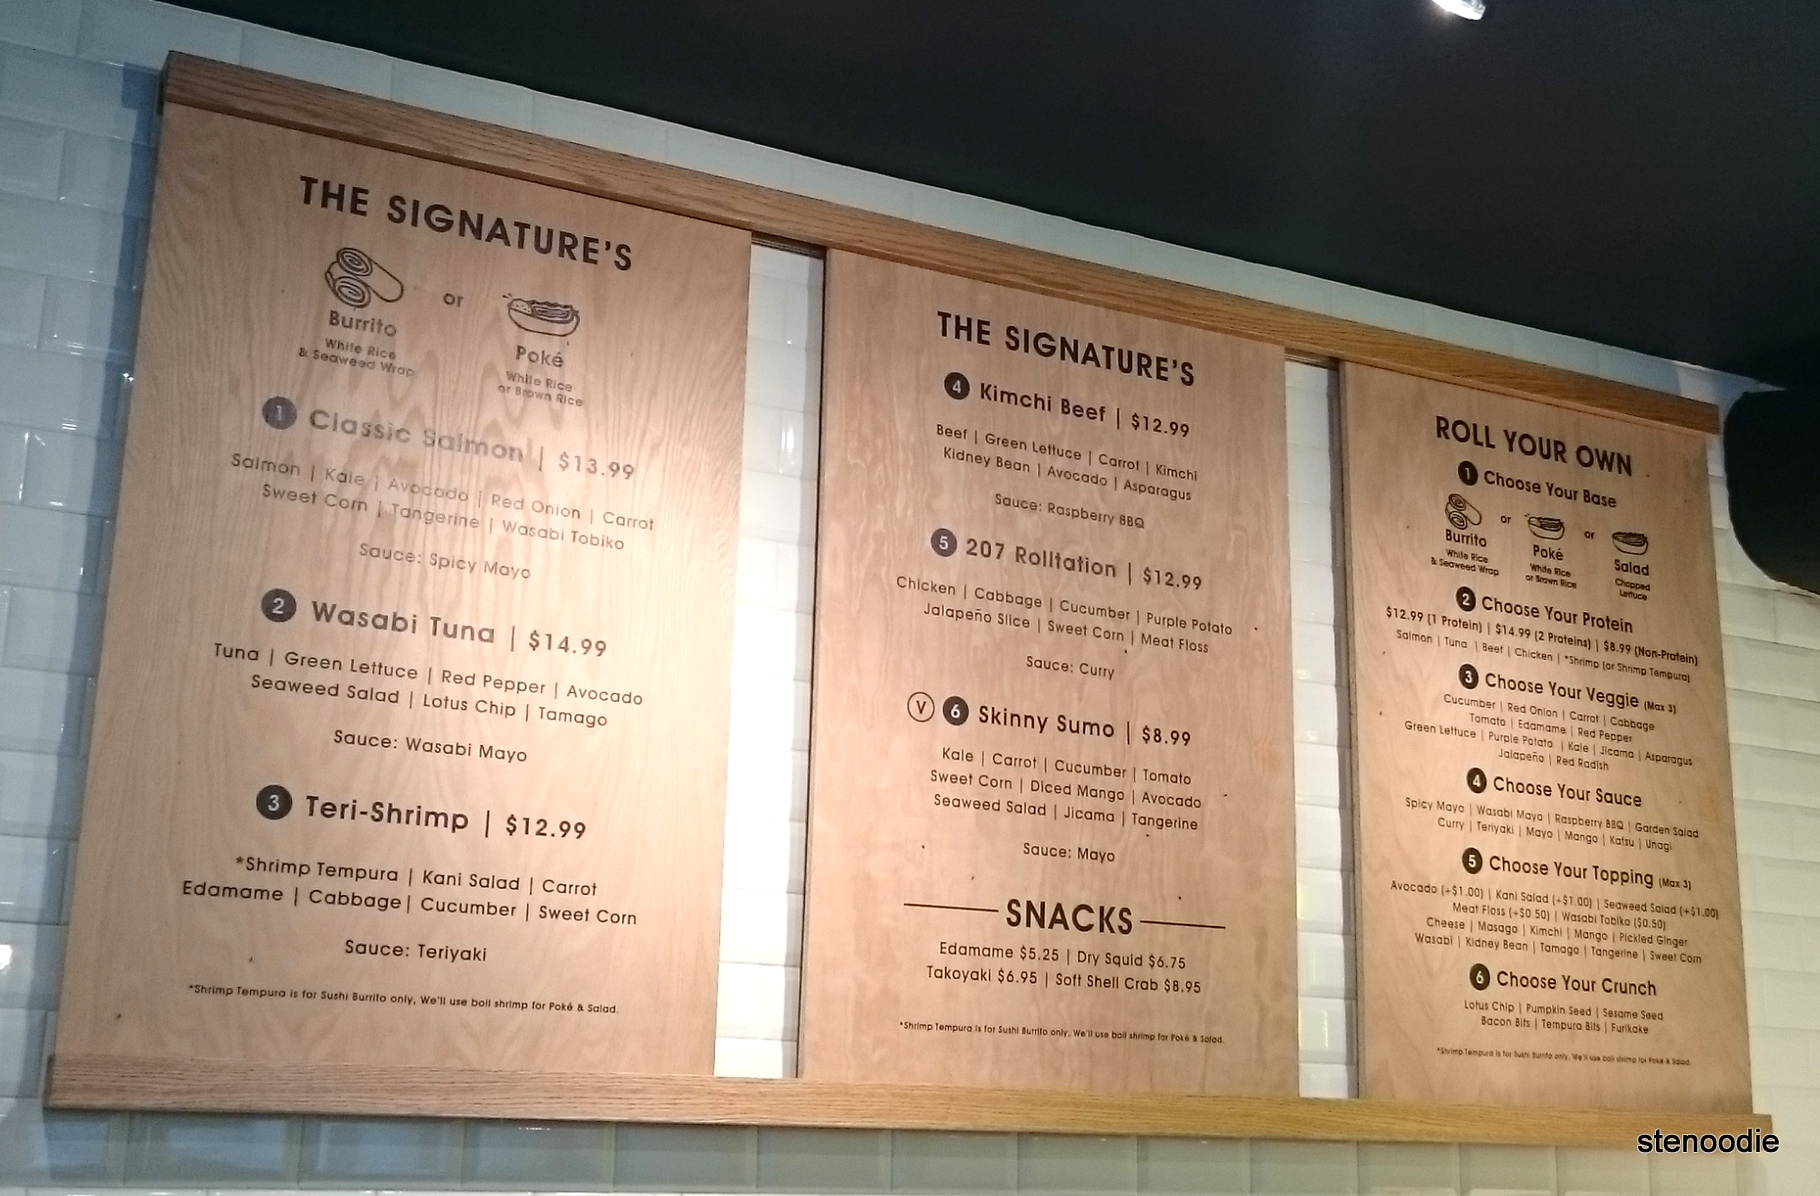 Rolltation menu and prices